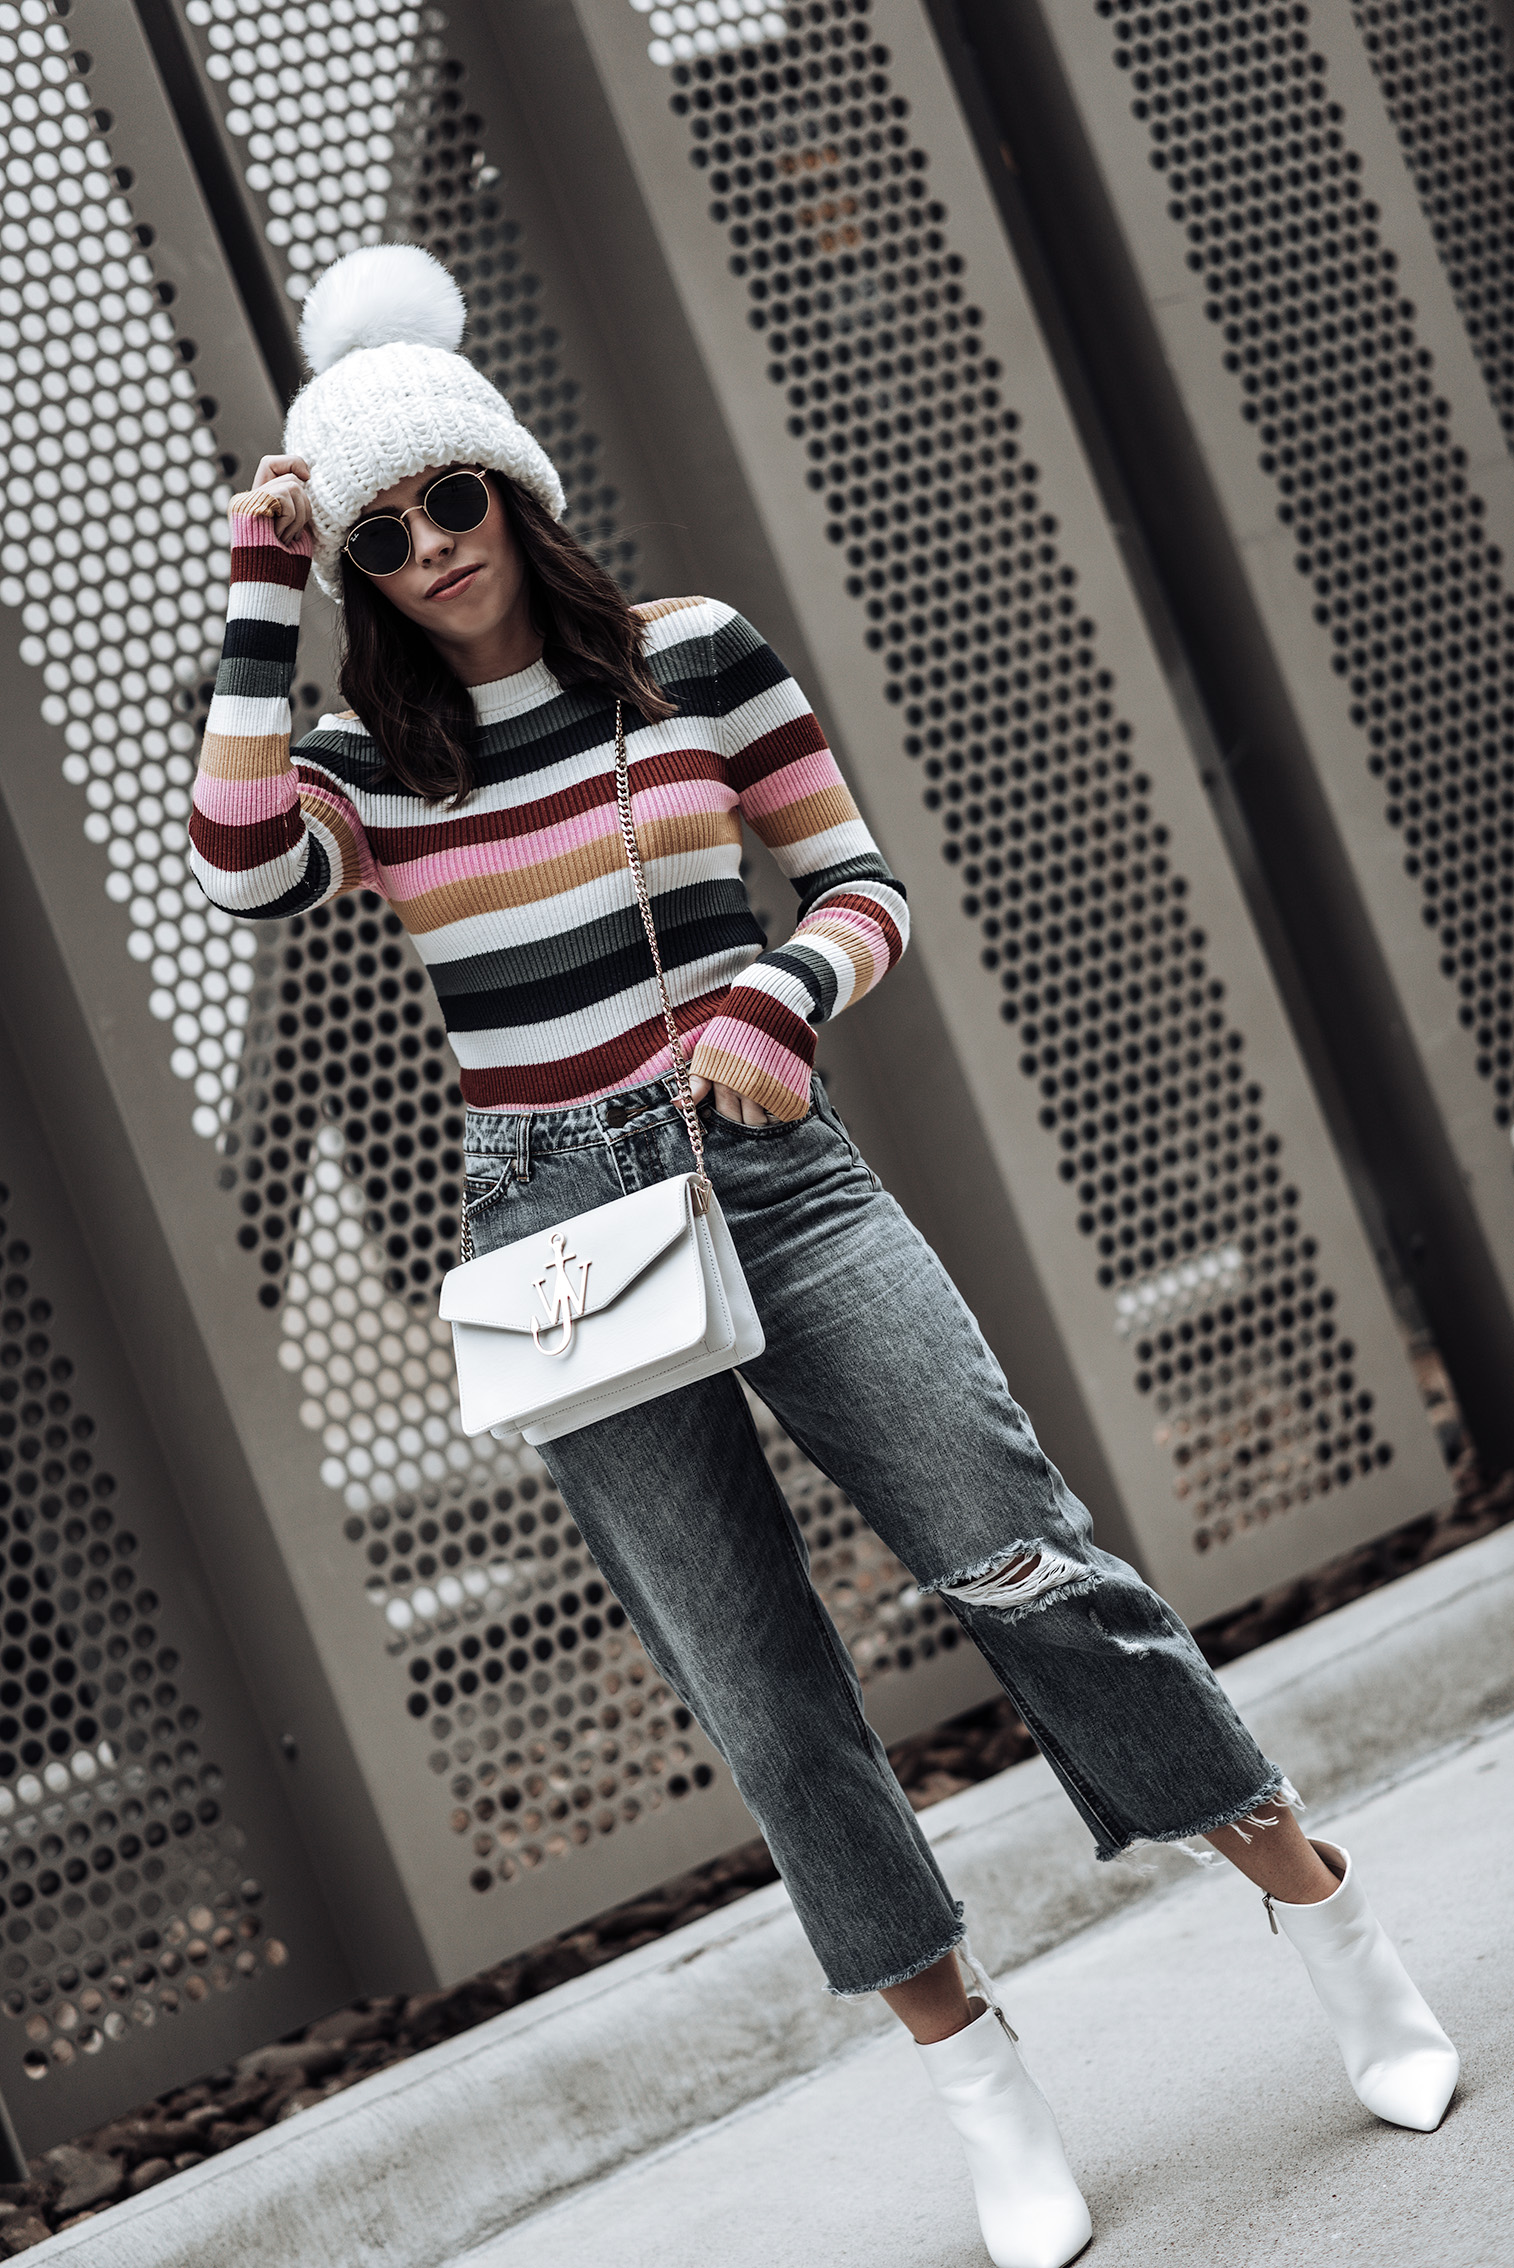 Click to shop the exact look |Bold striped sweater via Forever21 | Wide leg denim (similar style here) | J.W. Anderson bag |White ankle boots | White oversized chunky knit beanie | street style 2018 #streetstyle #jwanderson #outfitideas #beanieoutfits